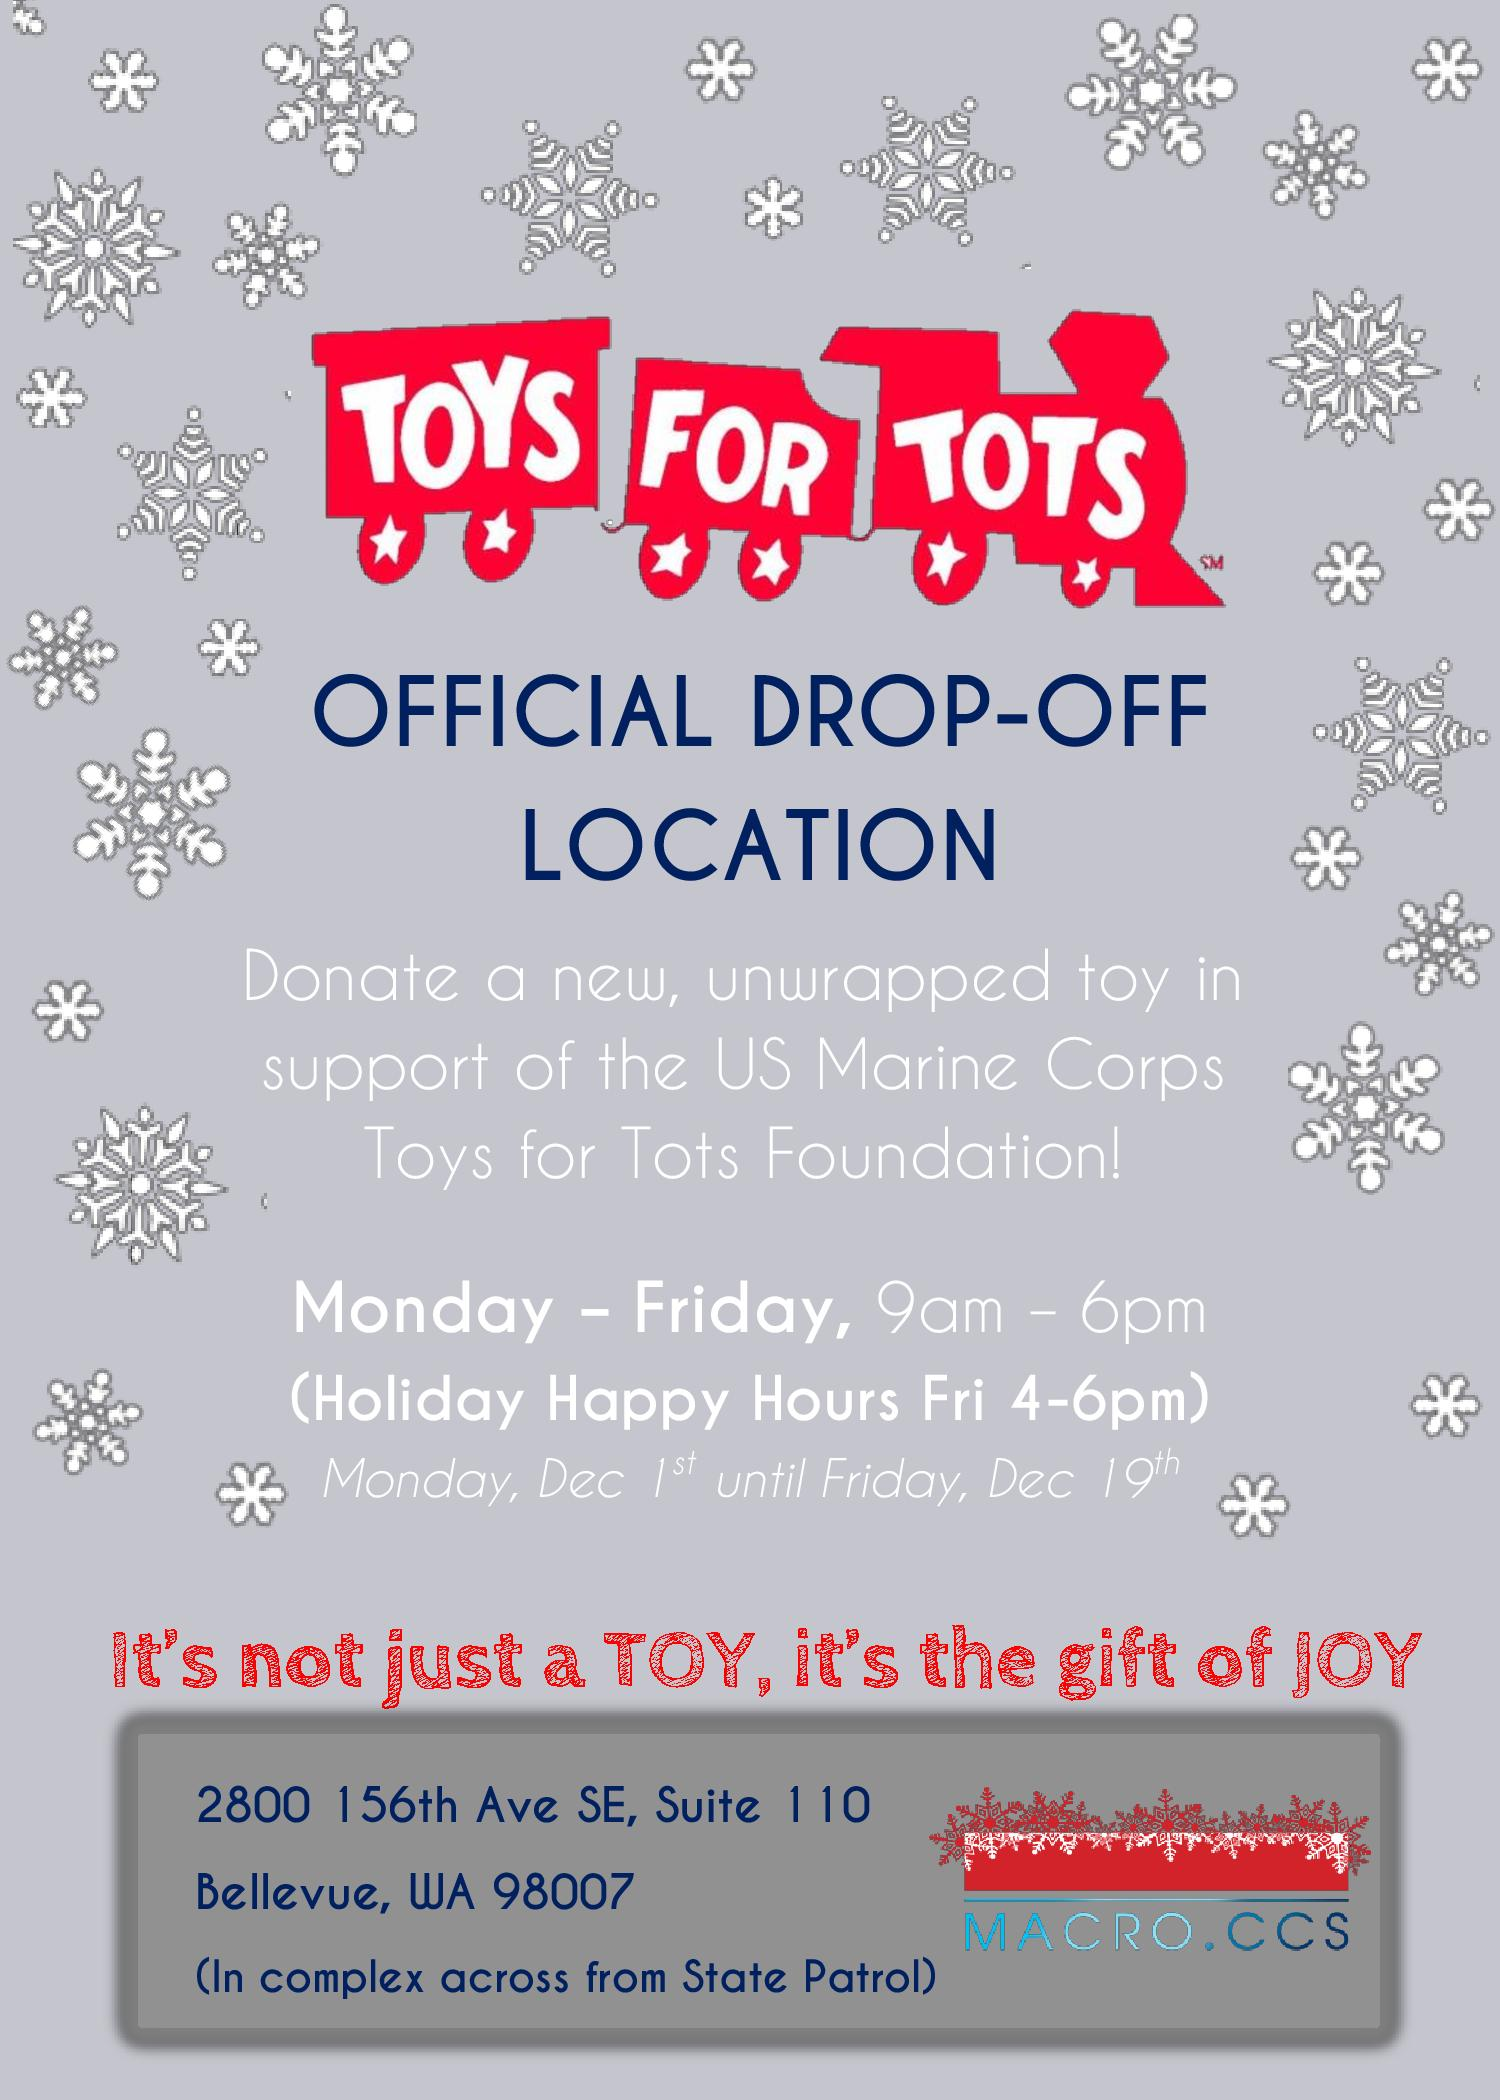 Marine Toys For Tots Foundation Logo : Events news archives macroccs